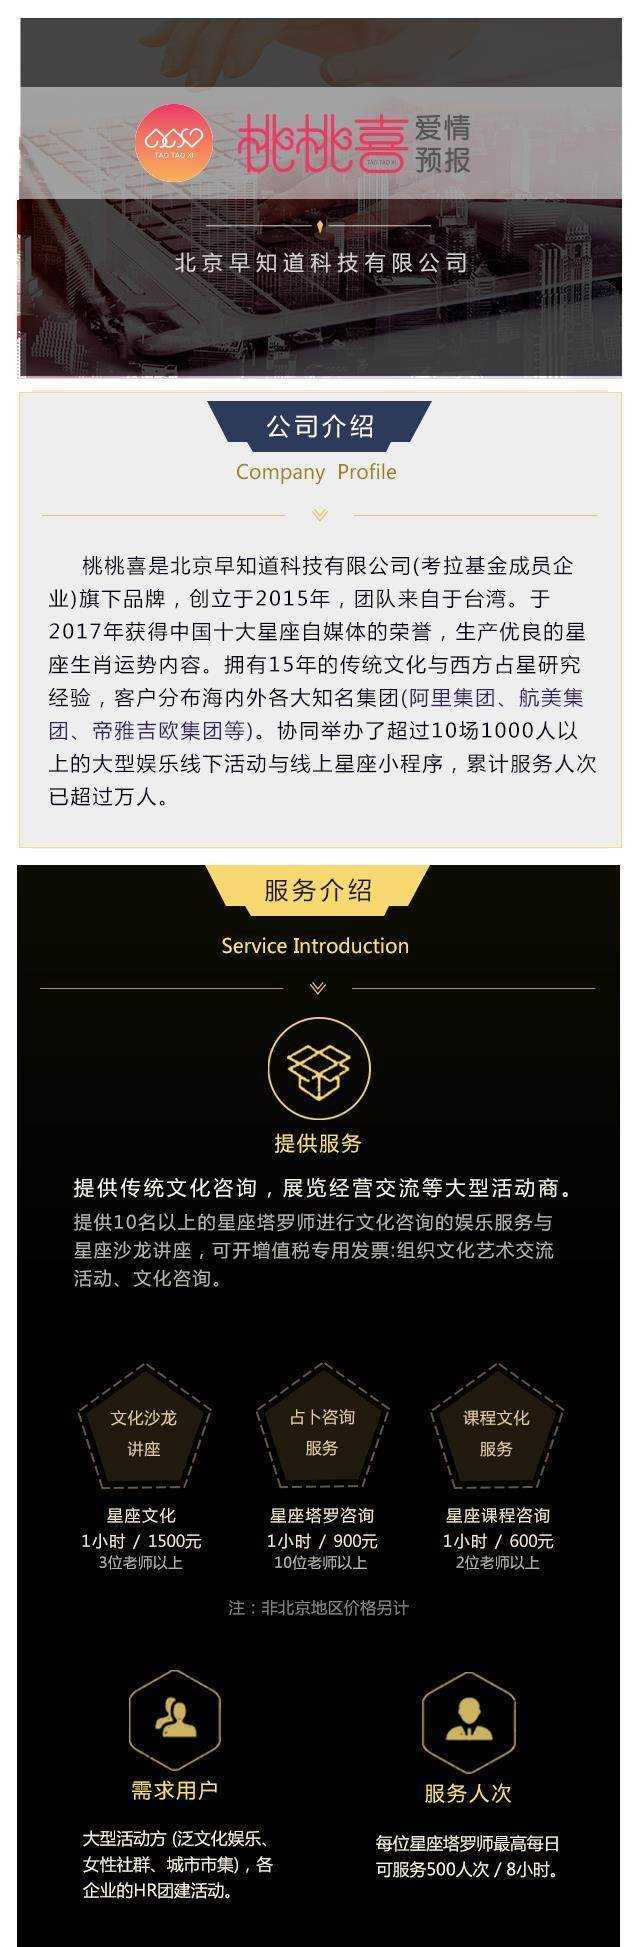 WeChat 圖片_20171214194434.png